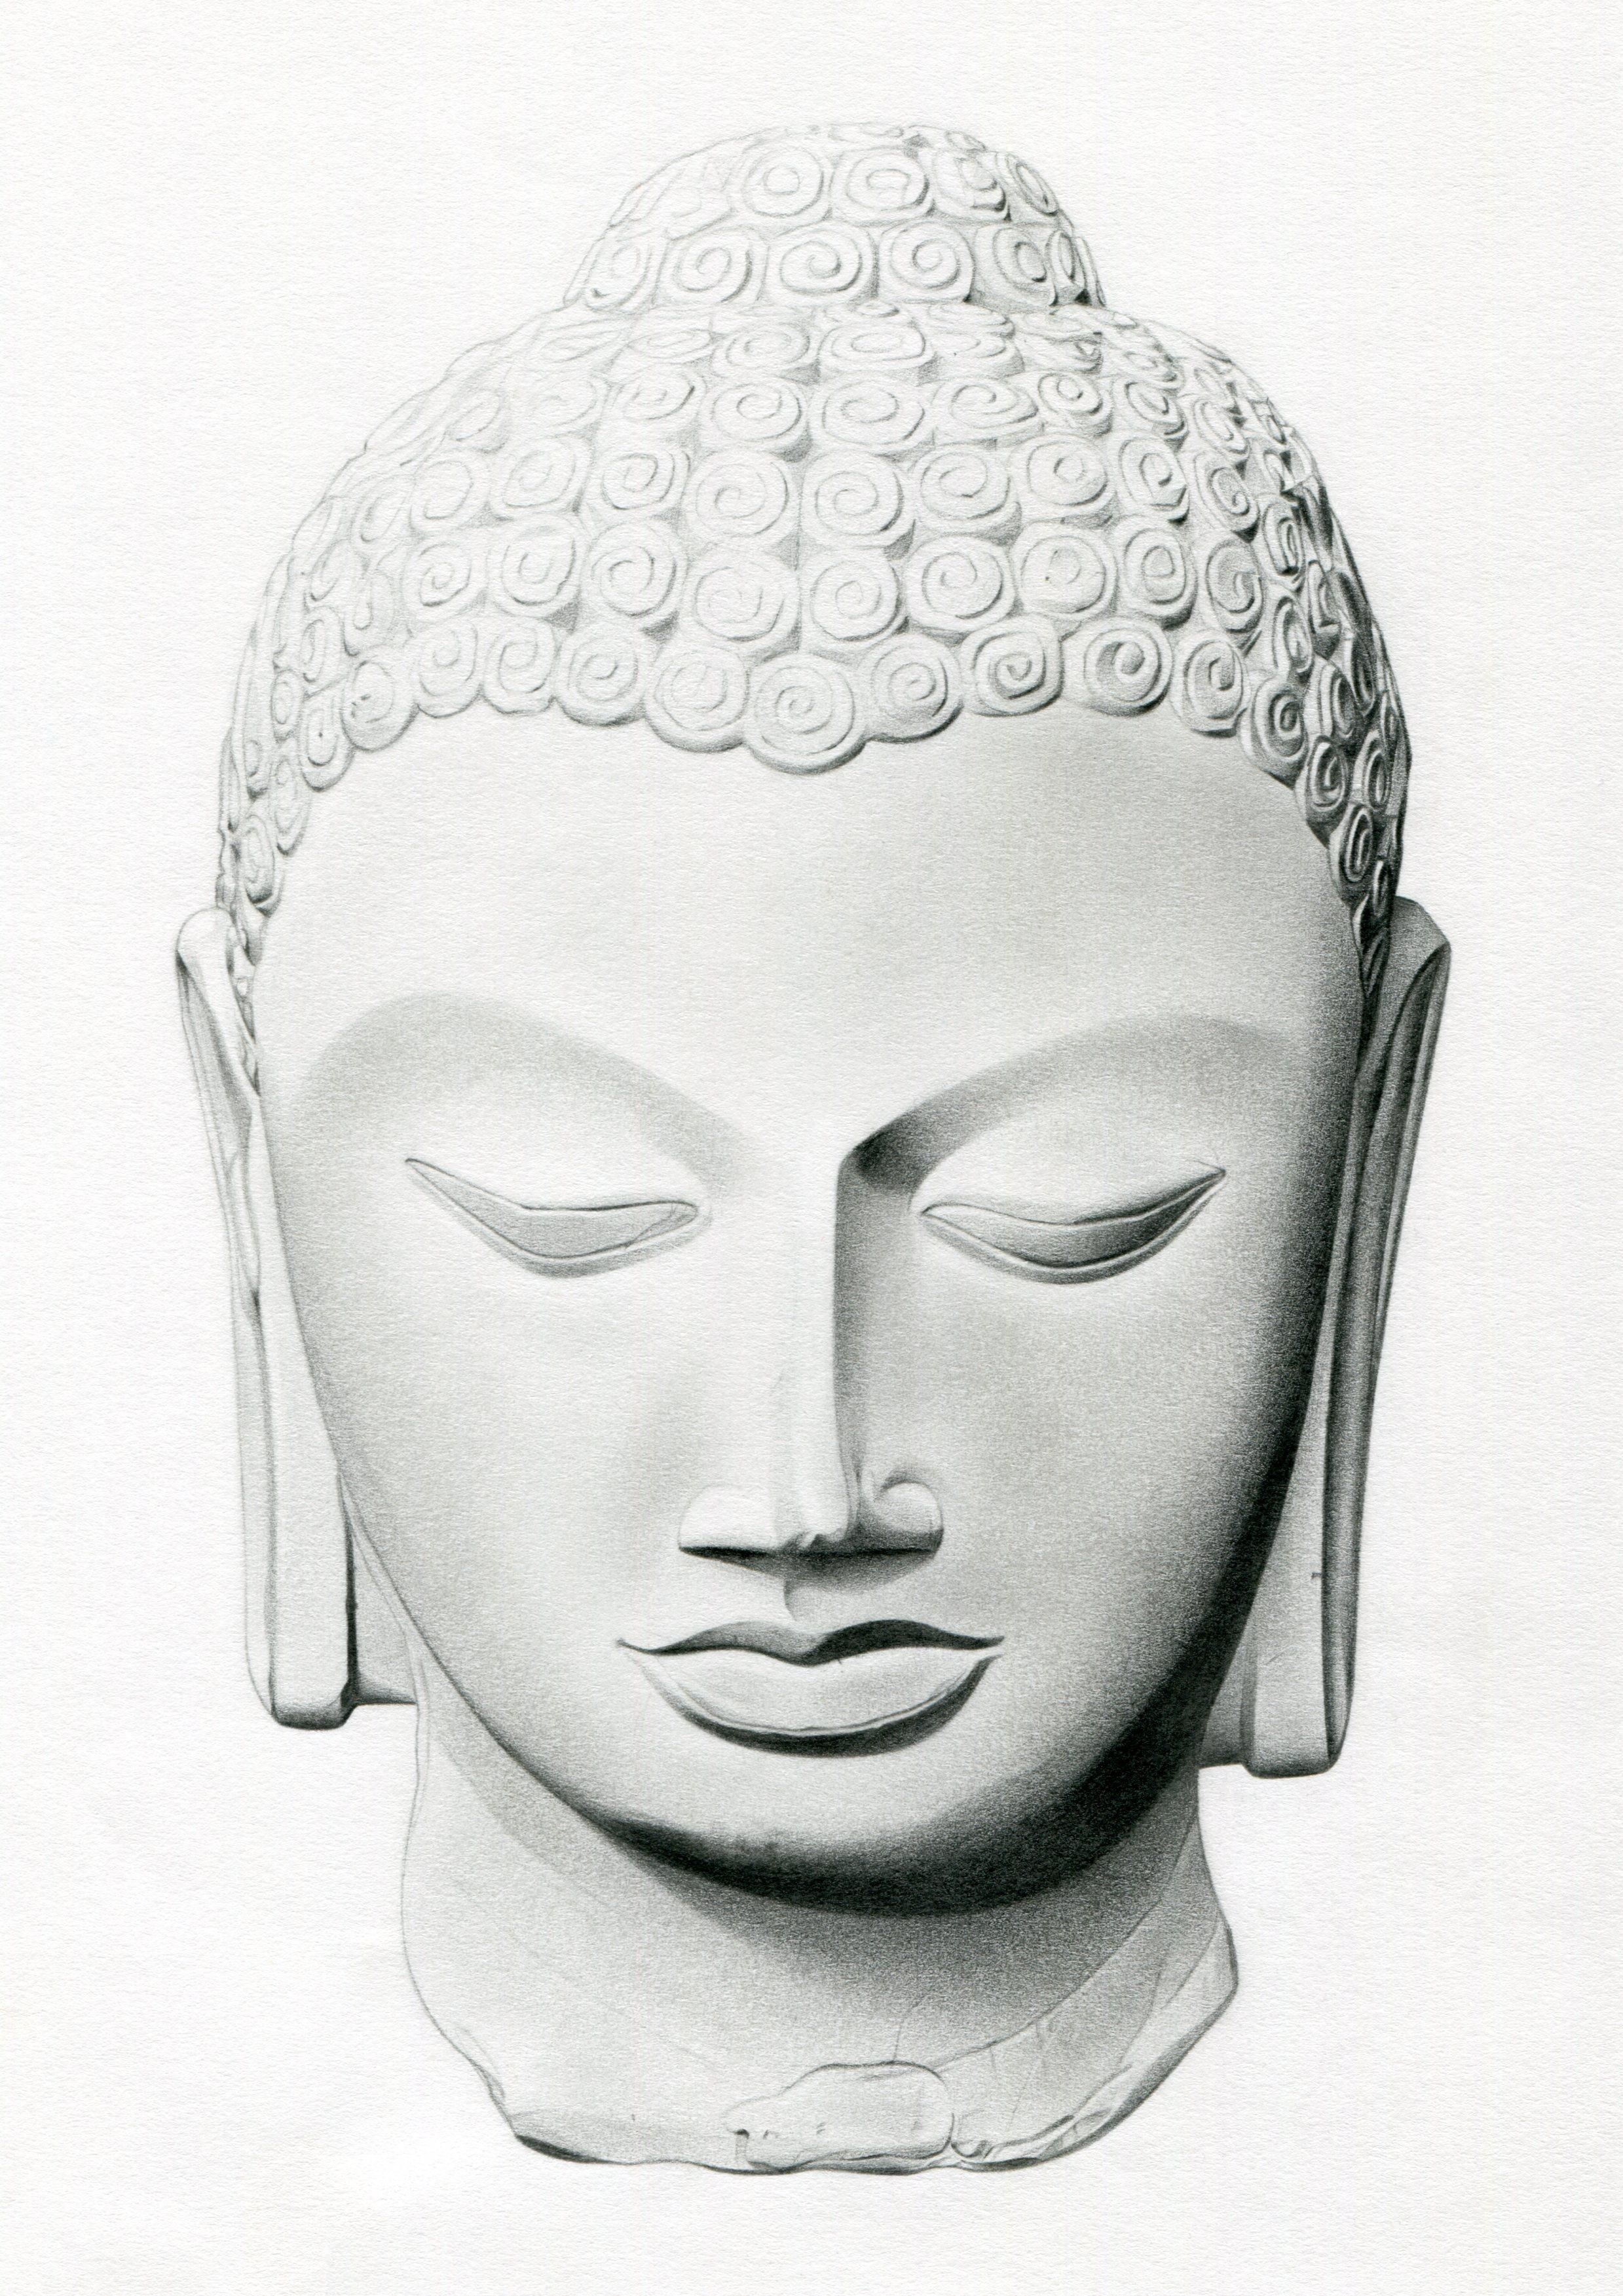 Pencil drawing of a buddha head statue